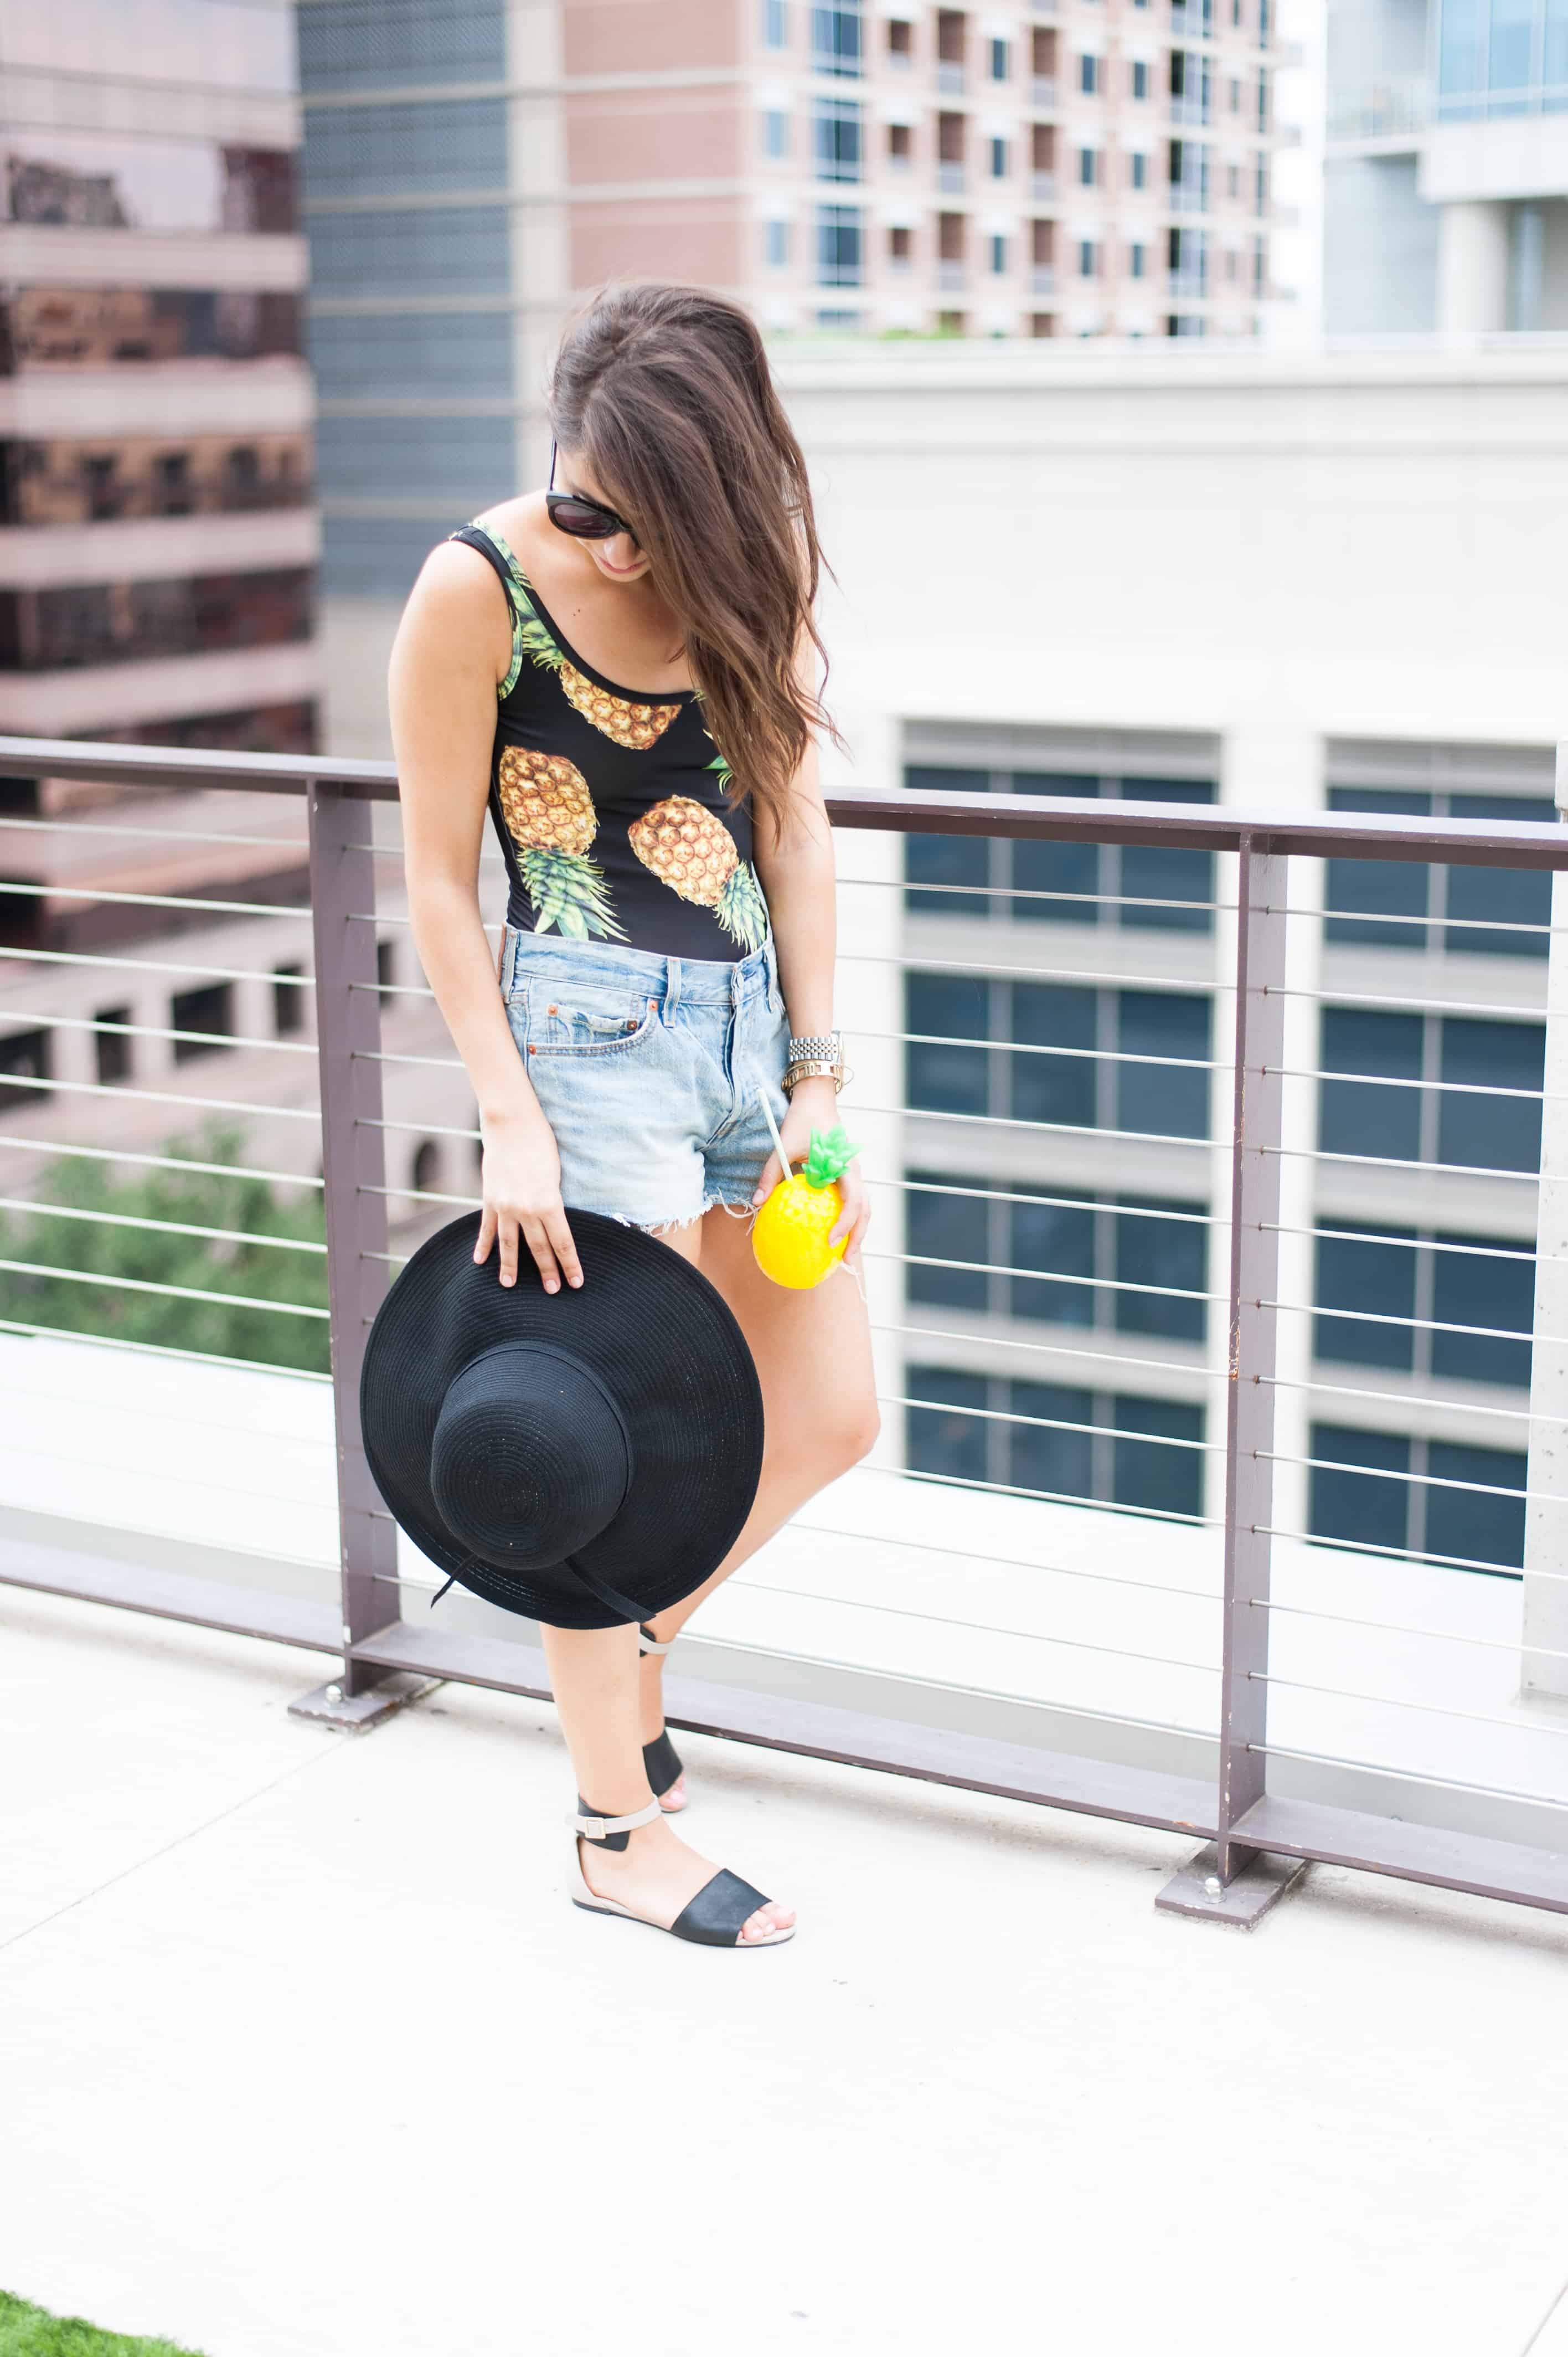 Dress Up Buttercup // A Houston-based fashion and inspiration blog developed to daily inspire your own personal style by Dede Raad | Bachelorette at the JW Marriott ATX